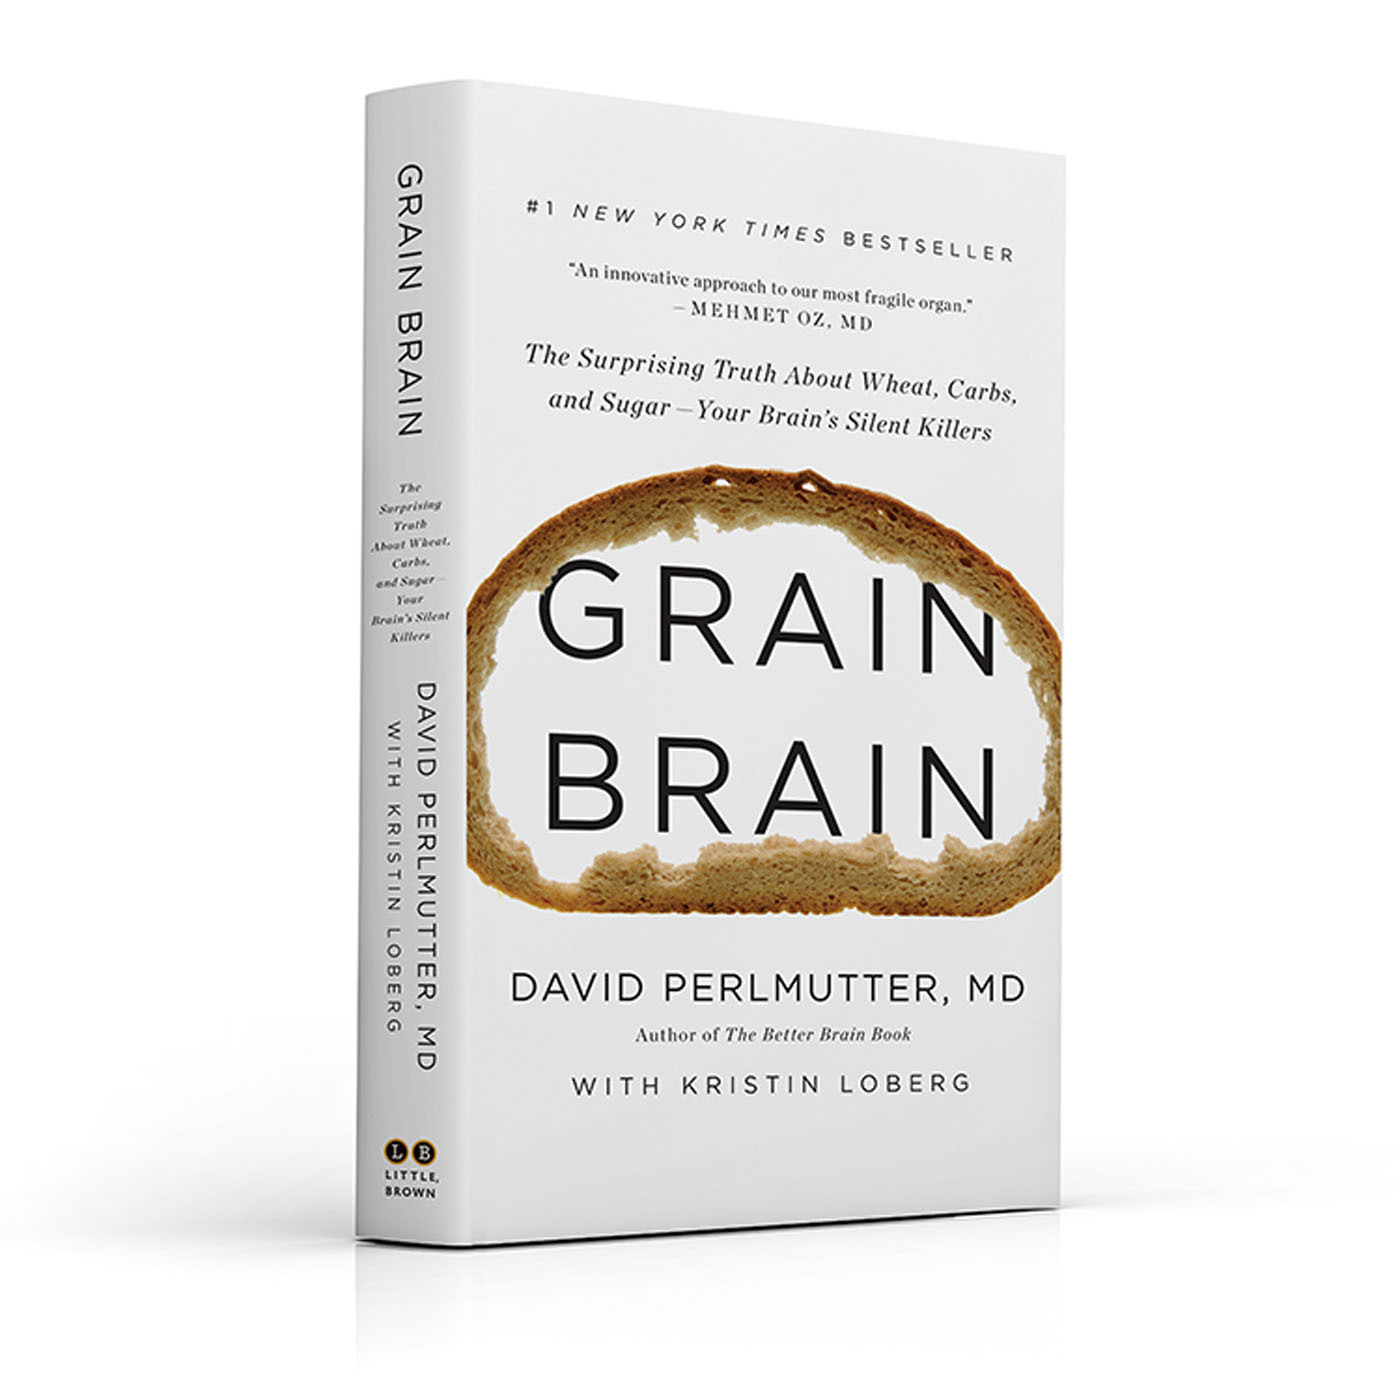 "#1 New York Times Bestseller, ""Grain Brain"".  (PRNewsFoto/Krupp Kommunications)"